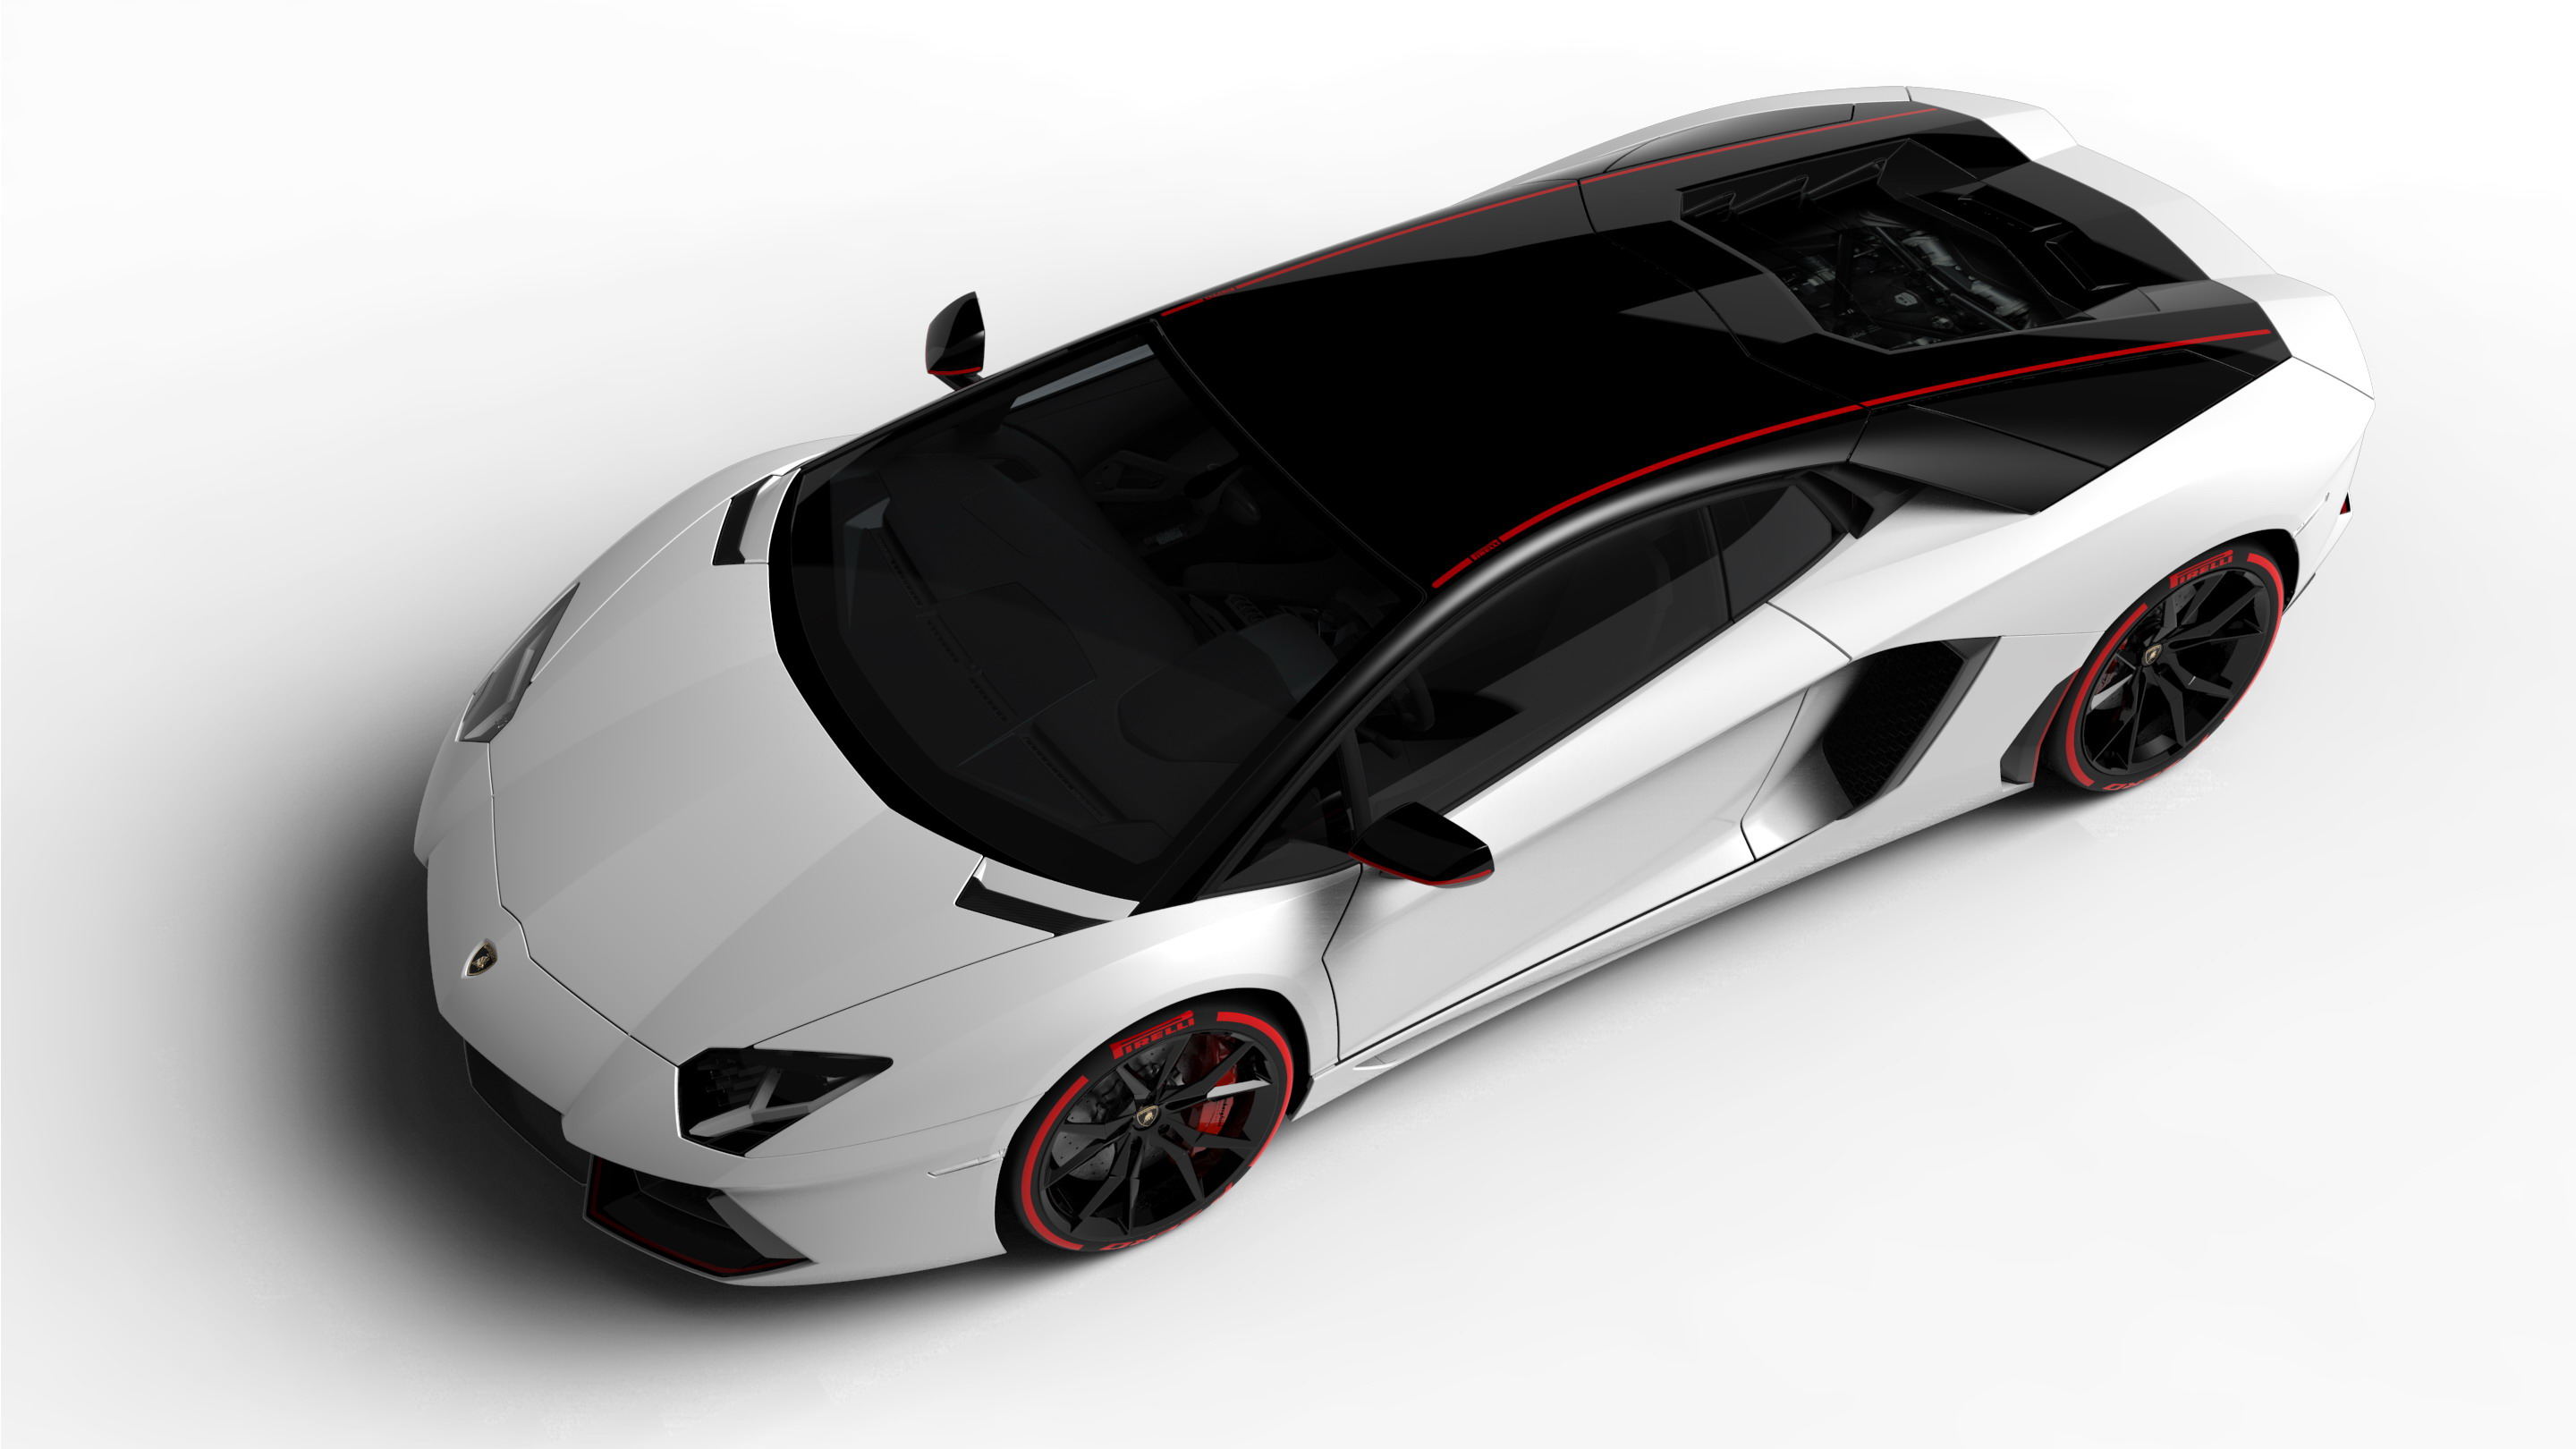 Lamborghini Aventador News And Reviews | Top Sd on